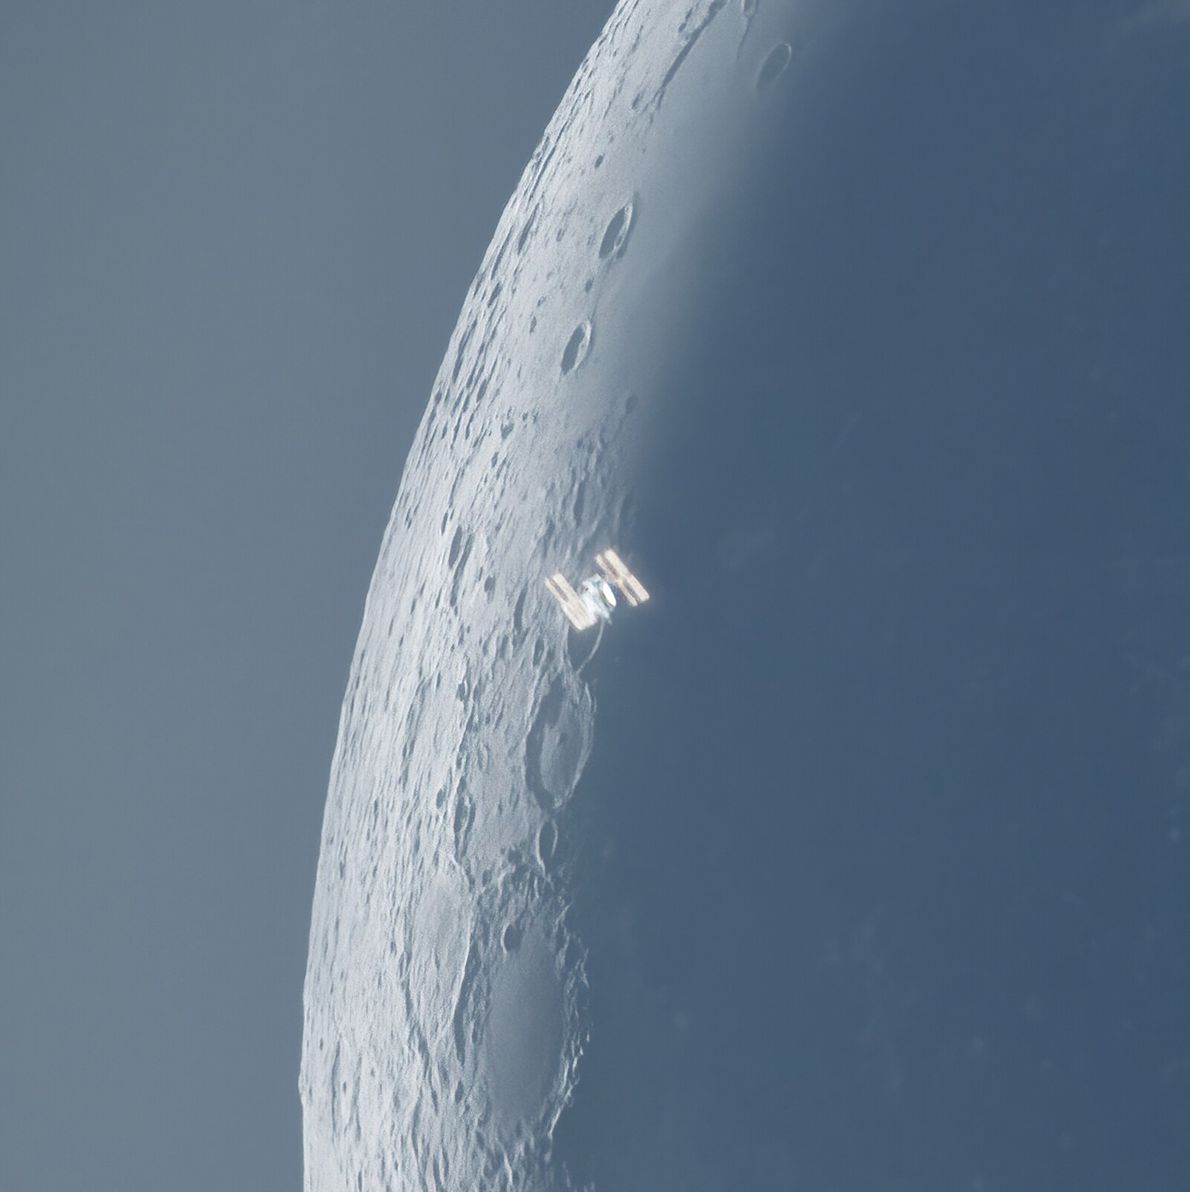 Shot in broad daylight, this image shows the International Space Station transiting a just-illuminated moon crescent. ...